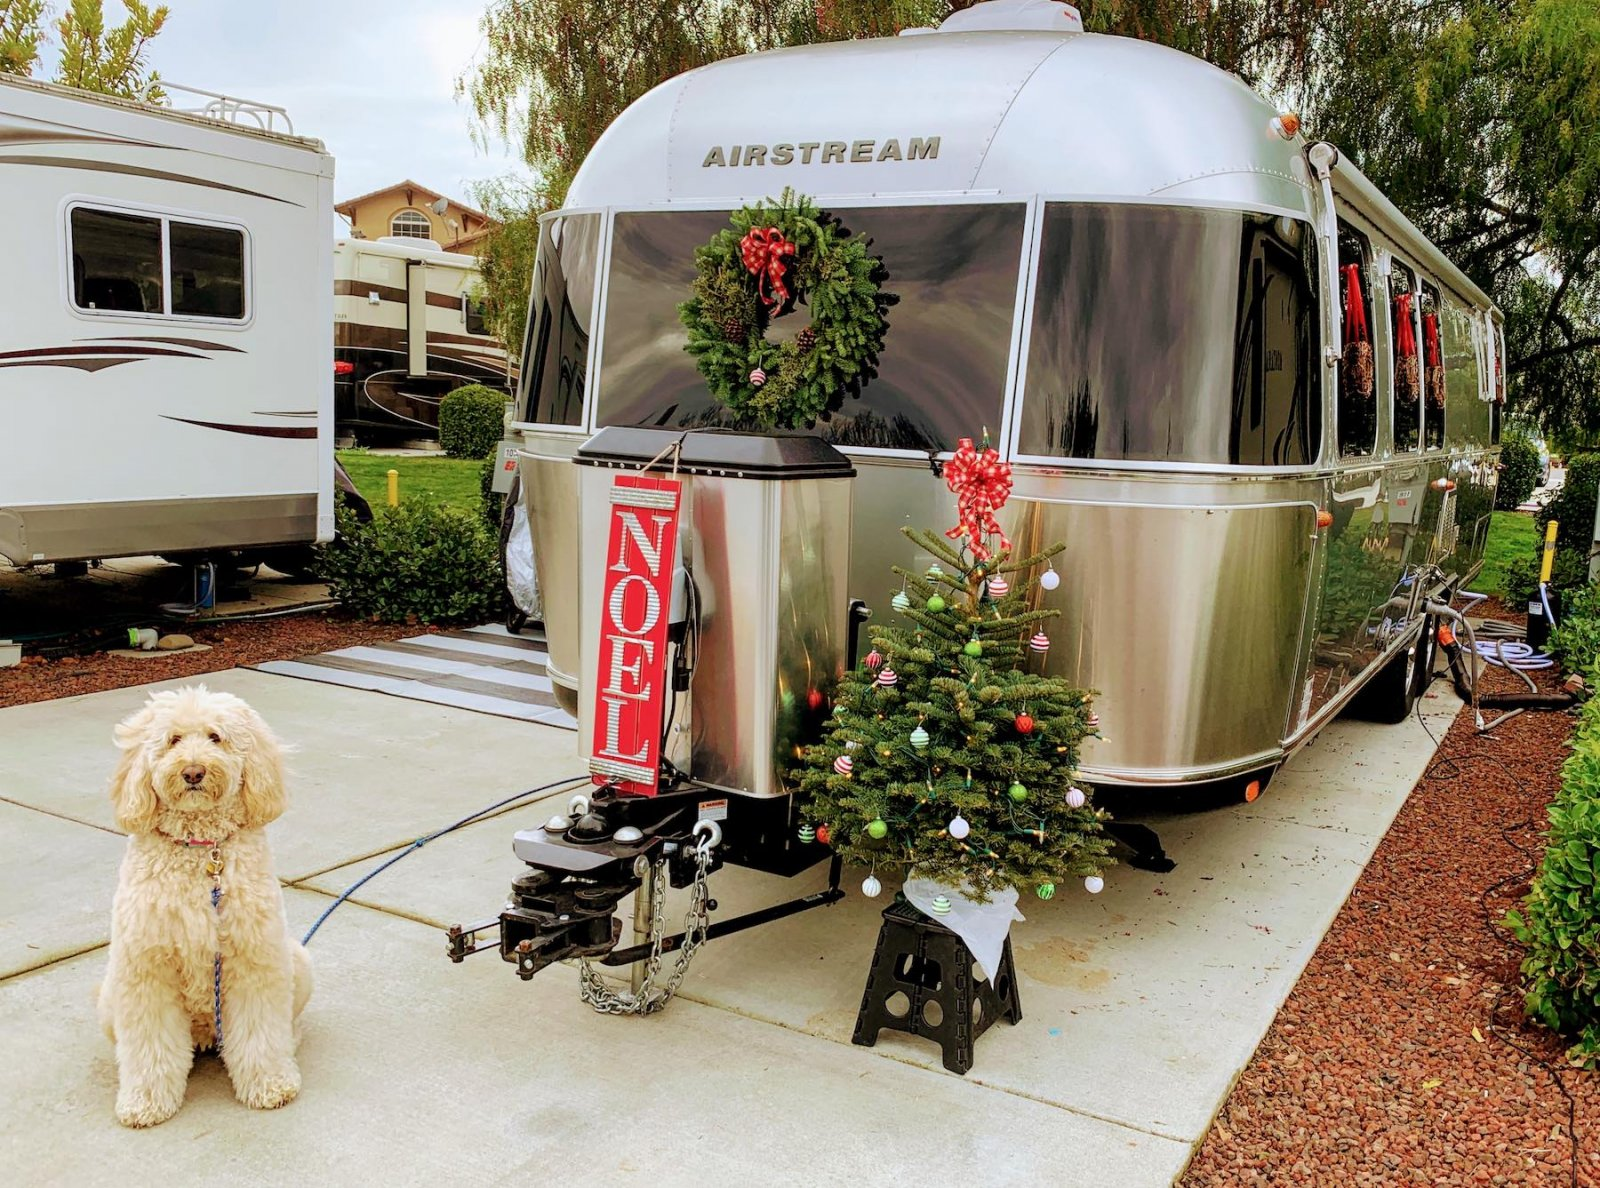 A furry dog sits patiently in front of an Airstream Trailer